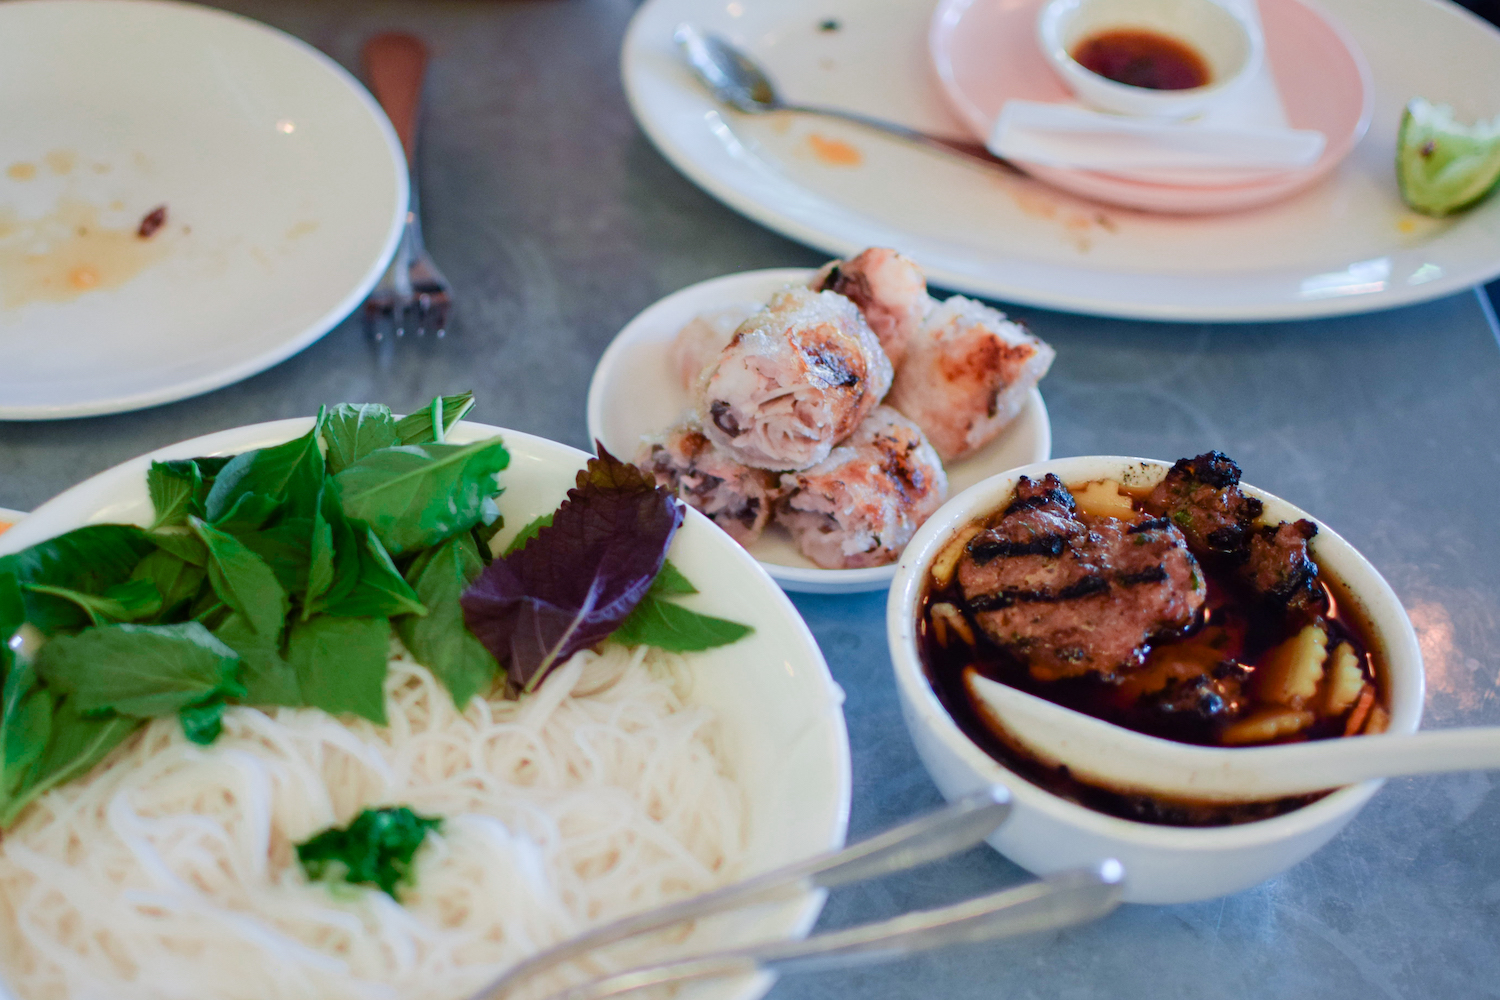 Large // Bun Cha Hanoi // Pork patties and belly in caramel fish sauce marinade, imperial rolls, rice vermicelli, and herbs